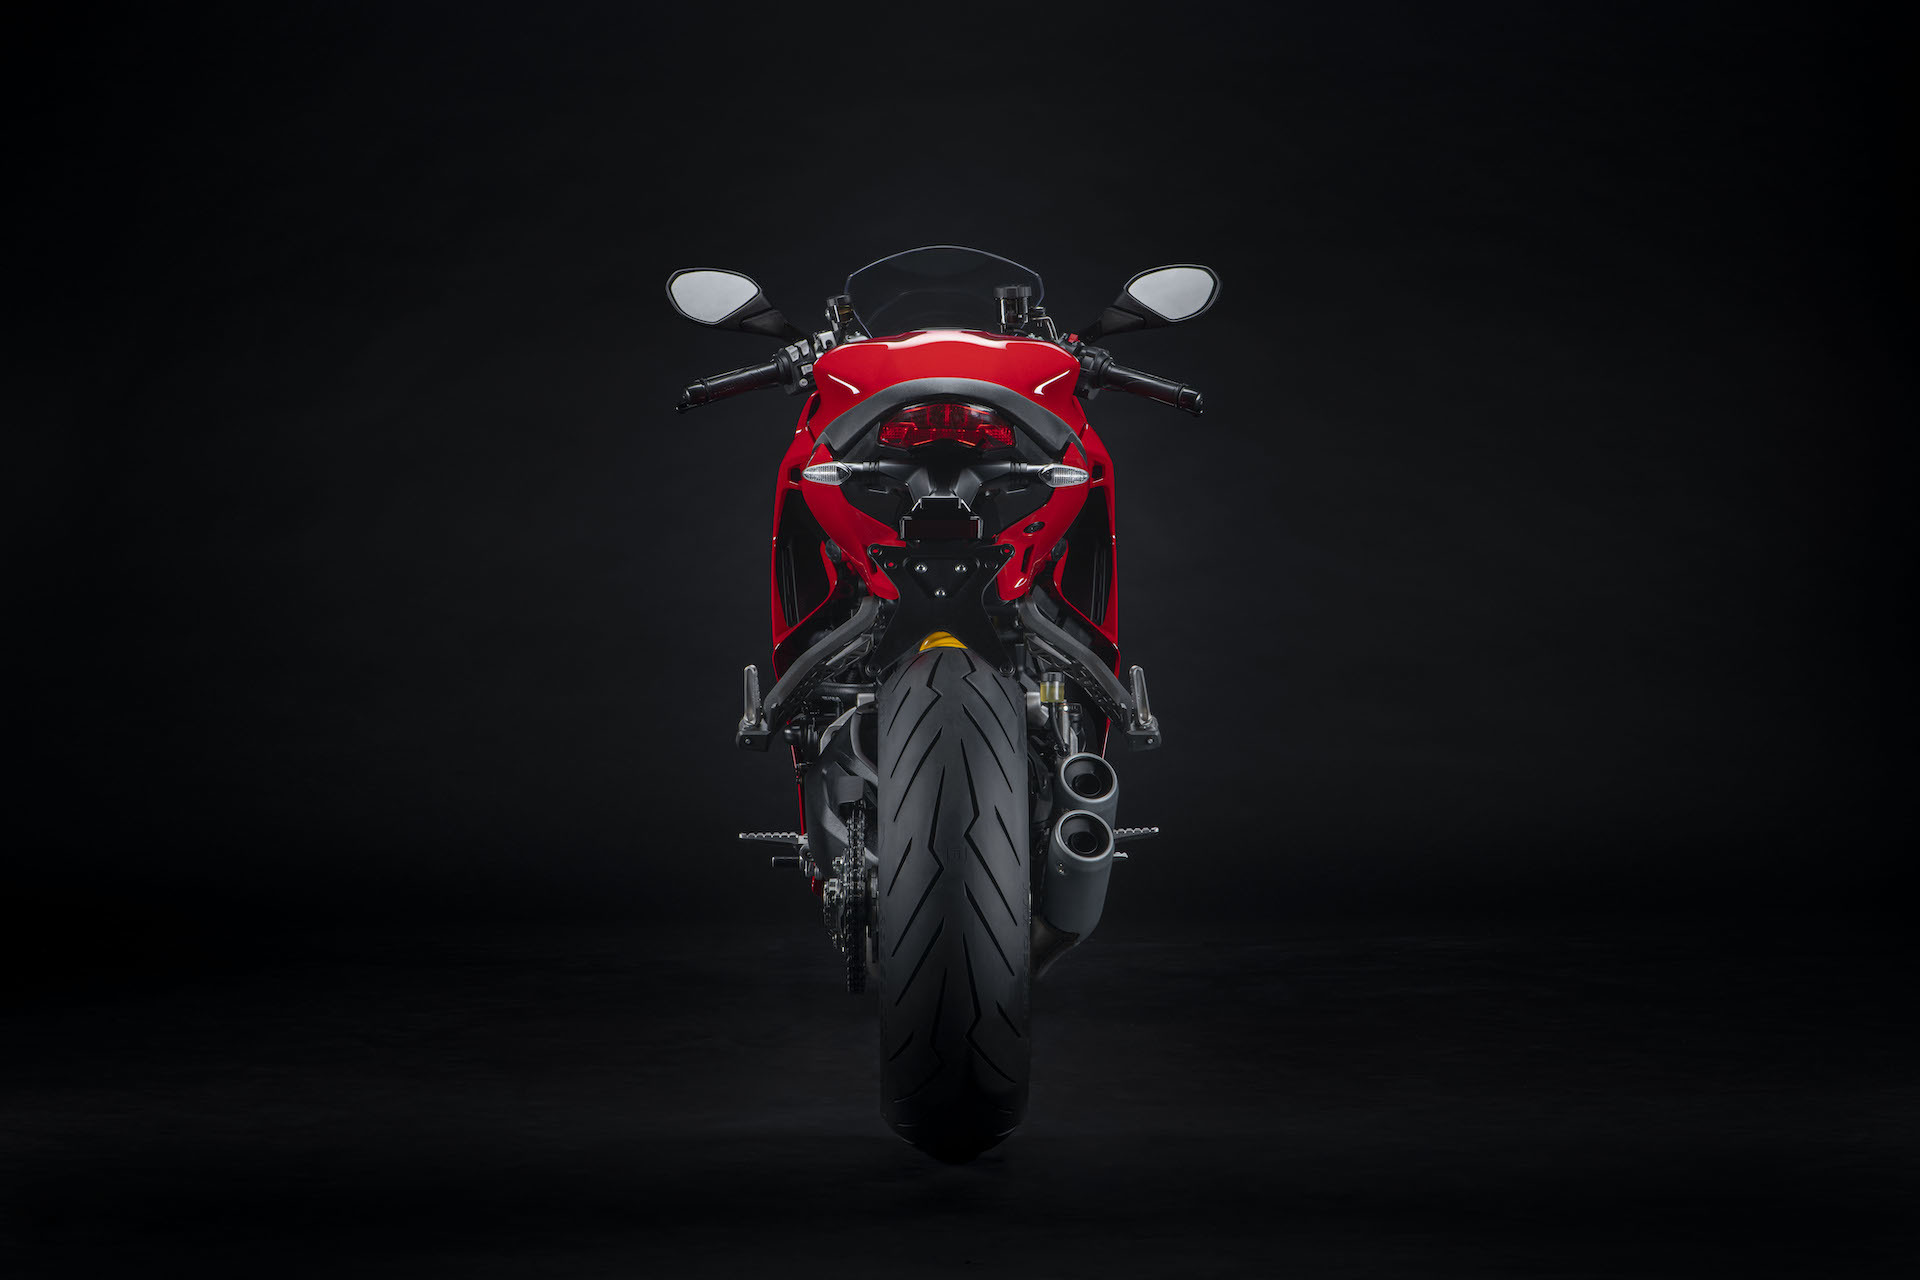 Moto Ducati Supersport 950 5